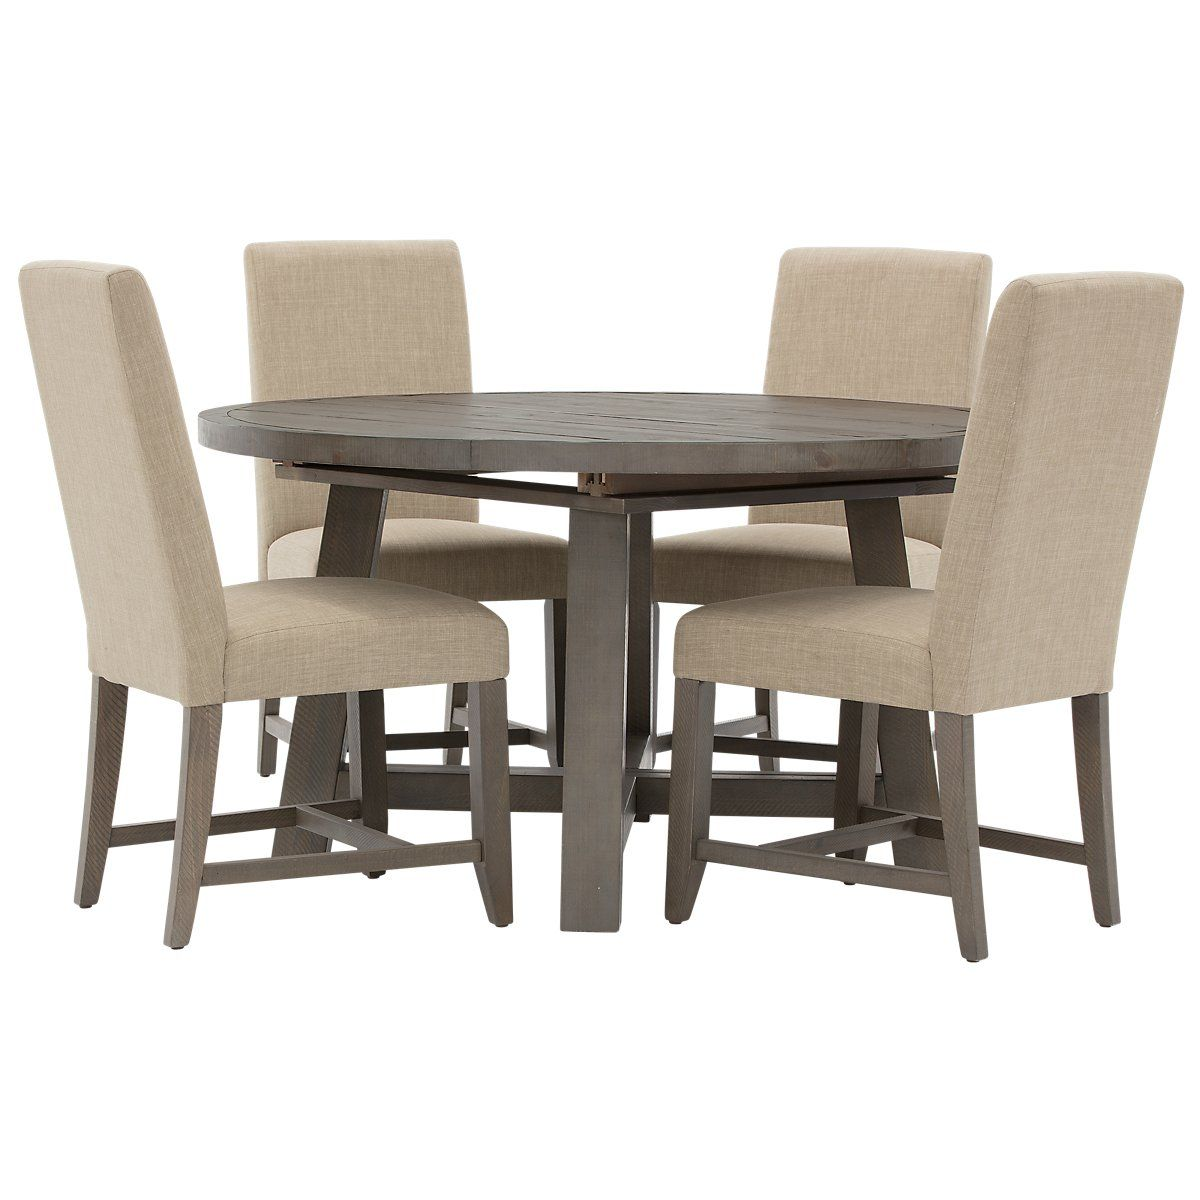 Pleasing Taryn Gray Wood Table 4 Upholstered Chairs Dining Rooms Bralicious Painted Fabric Chair Ideas Braliciousco